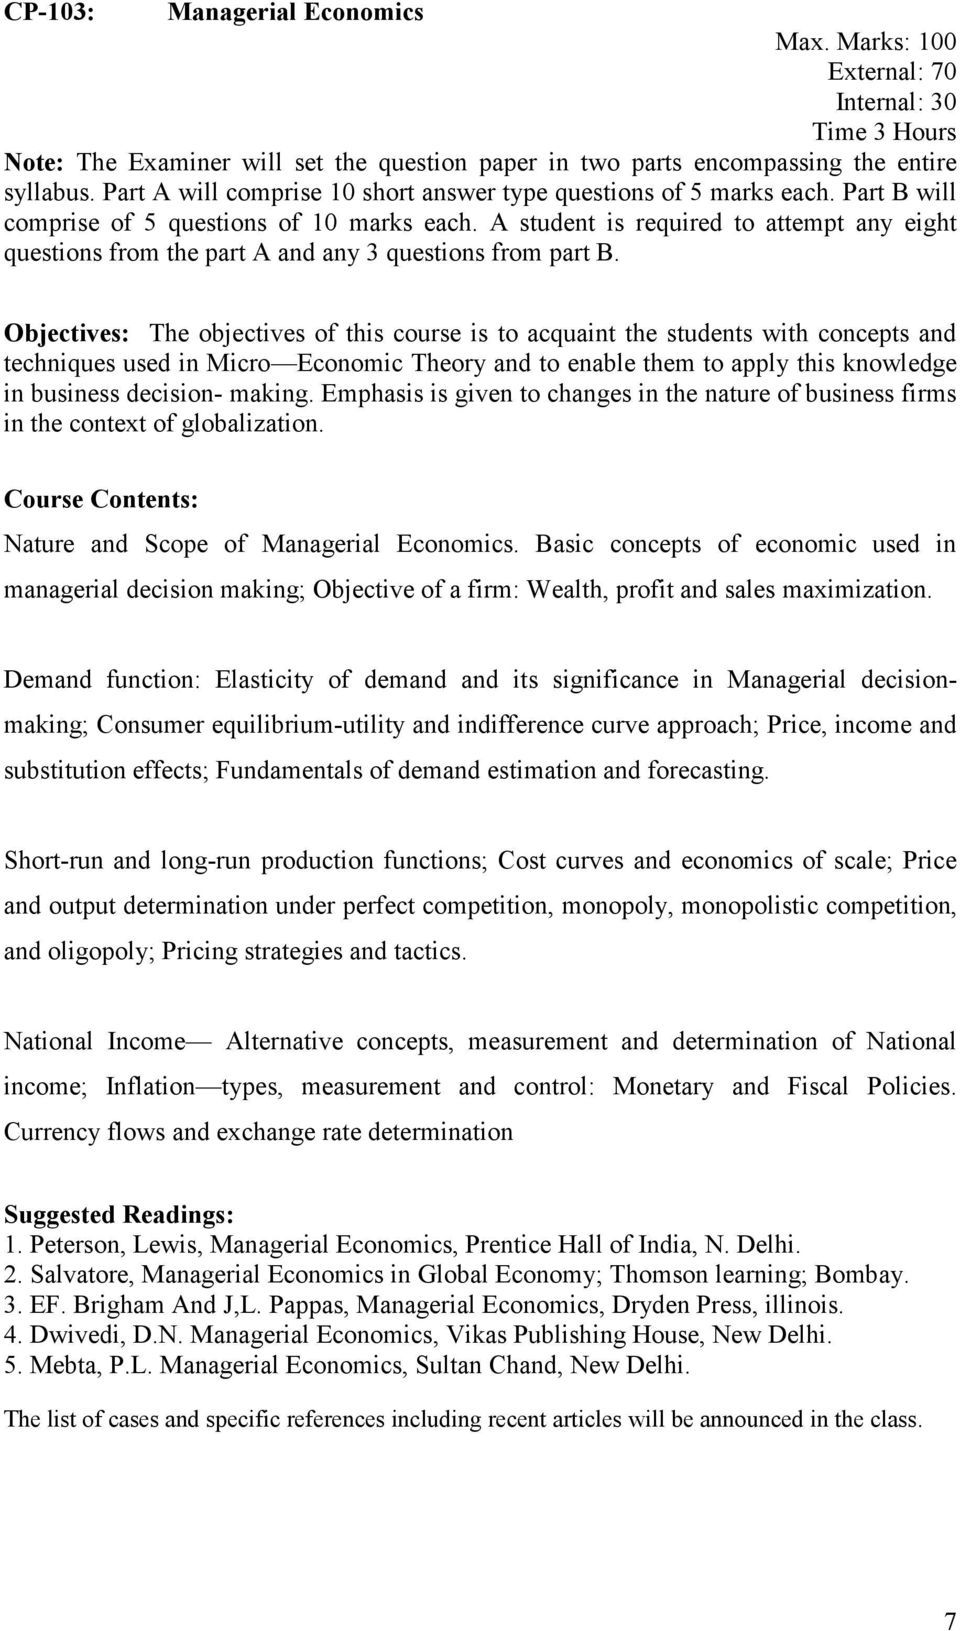 Basic concepts of economic used in managerial decision making; Objective of a firm: Wealth, profit and sales maximization.